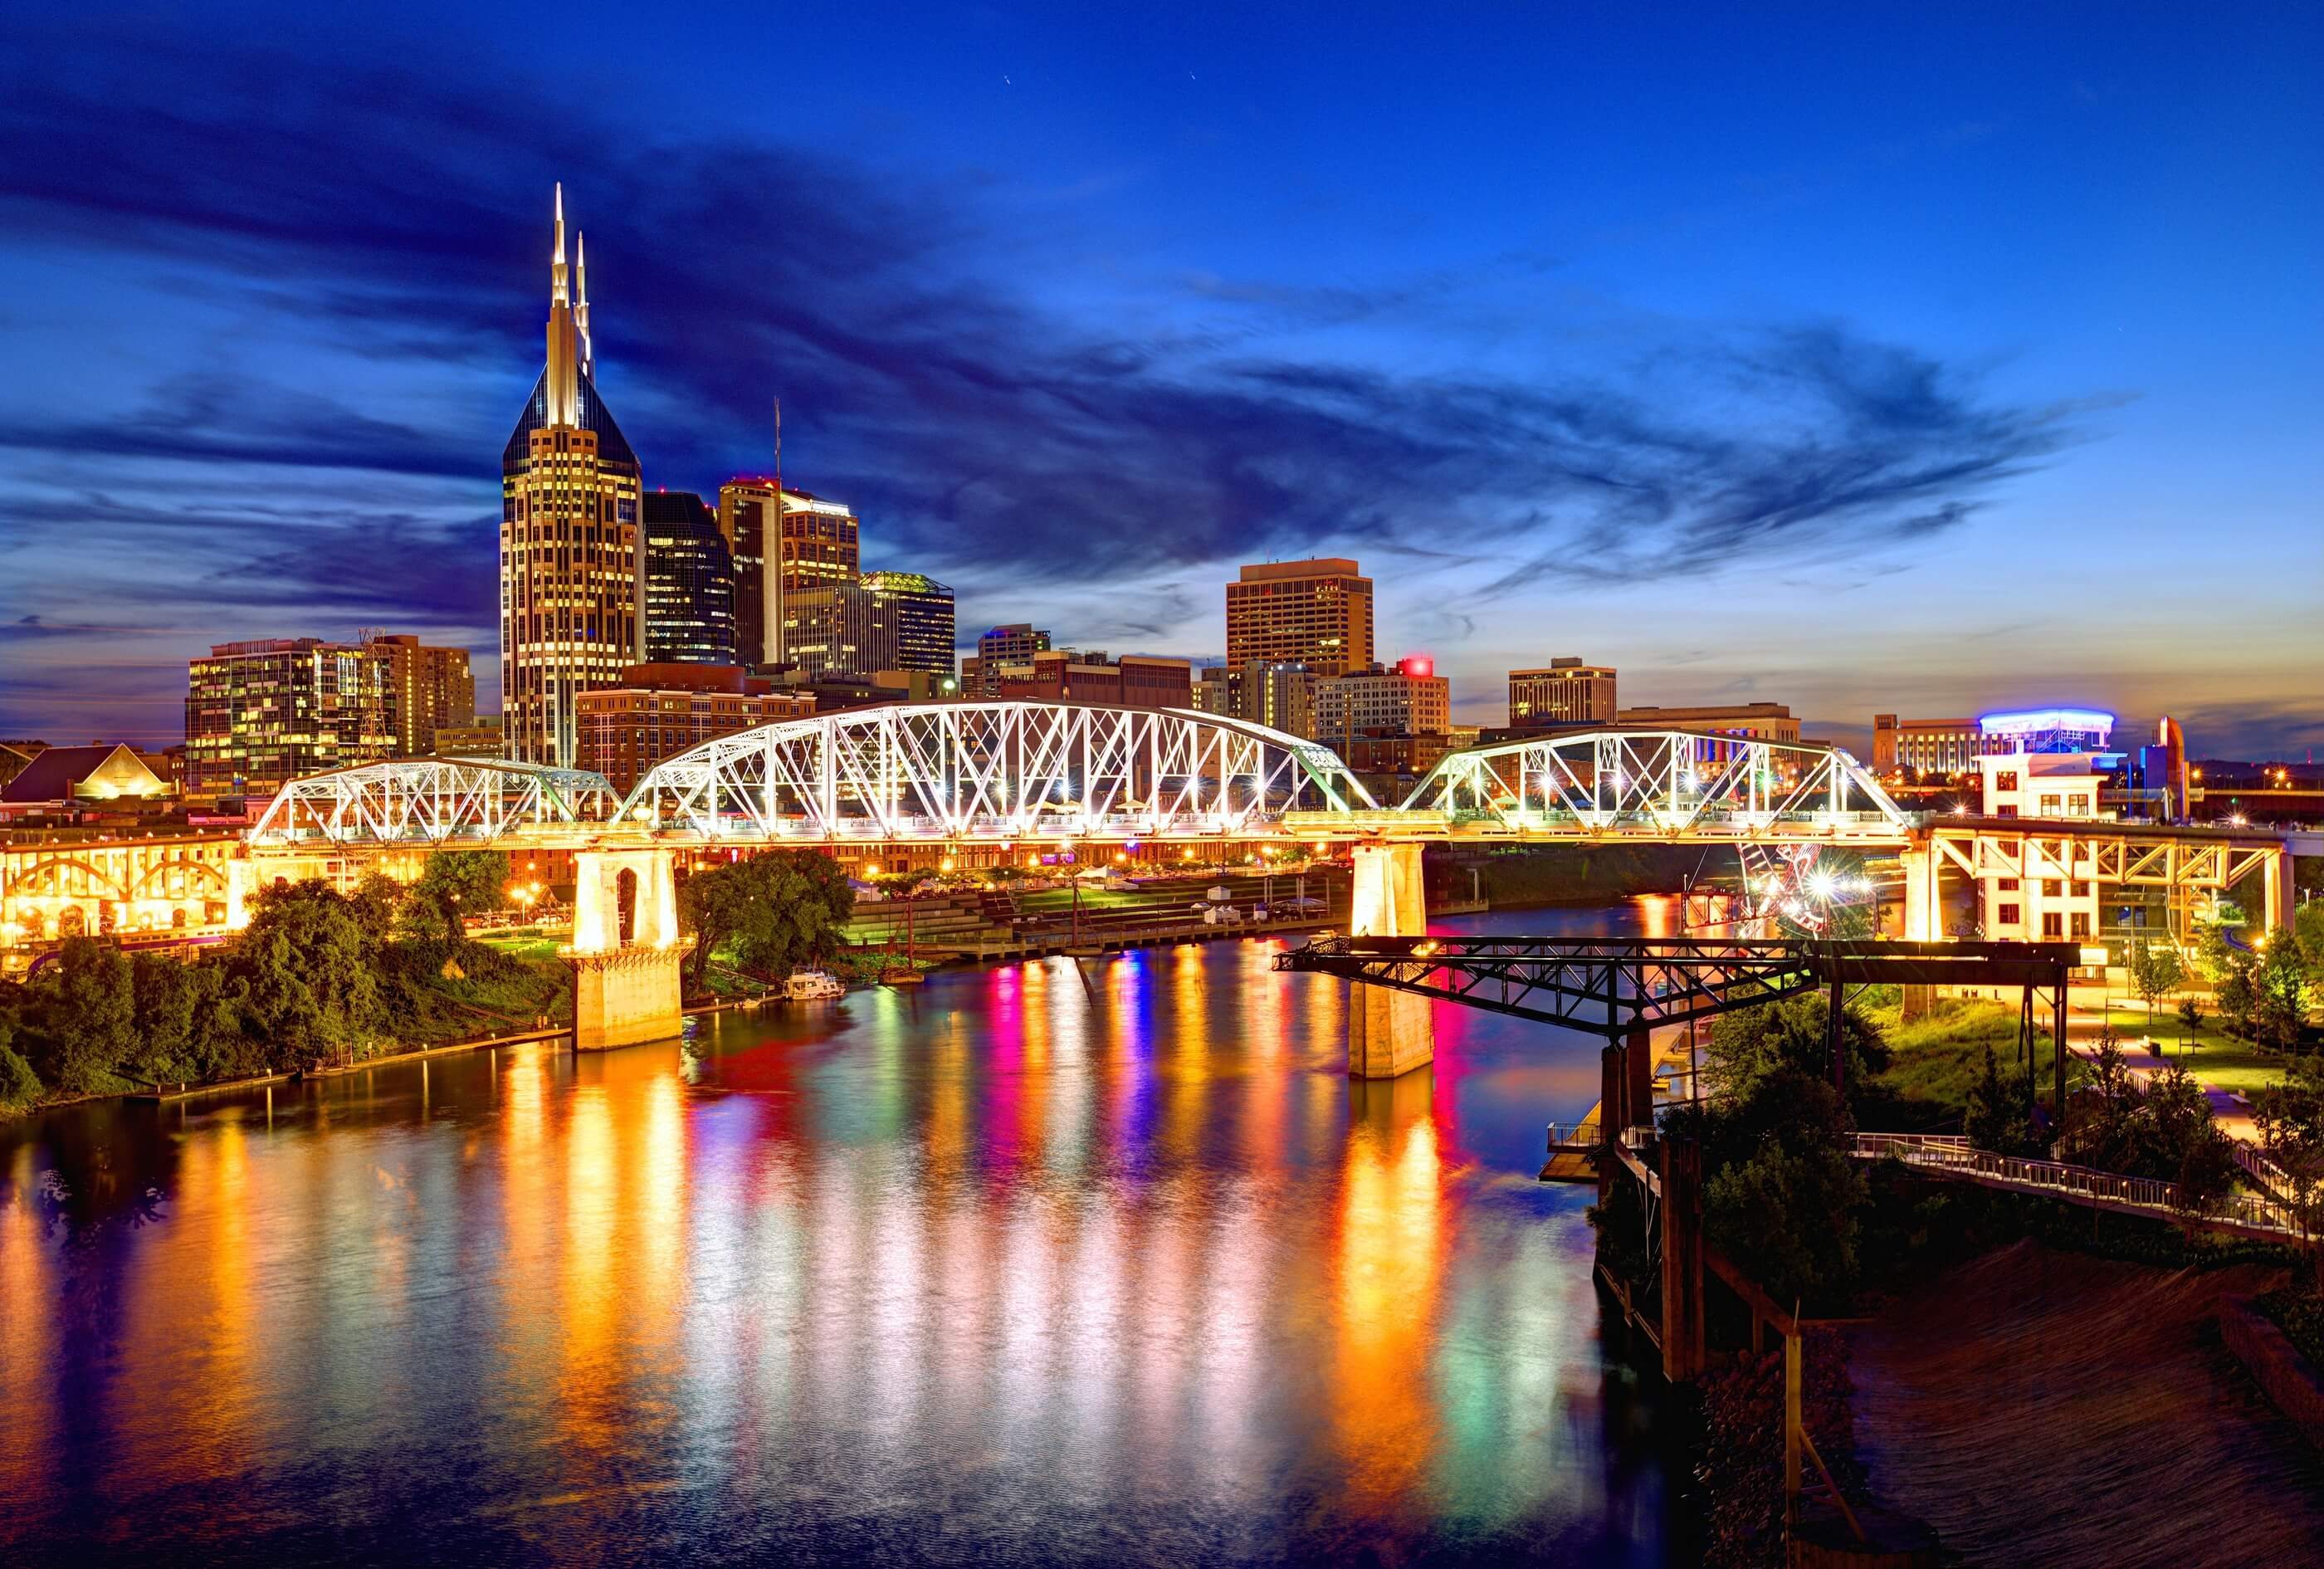 bigstock-Skyline-of-downtown-Nashville-46986169-11